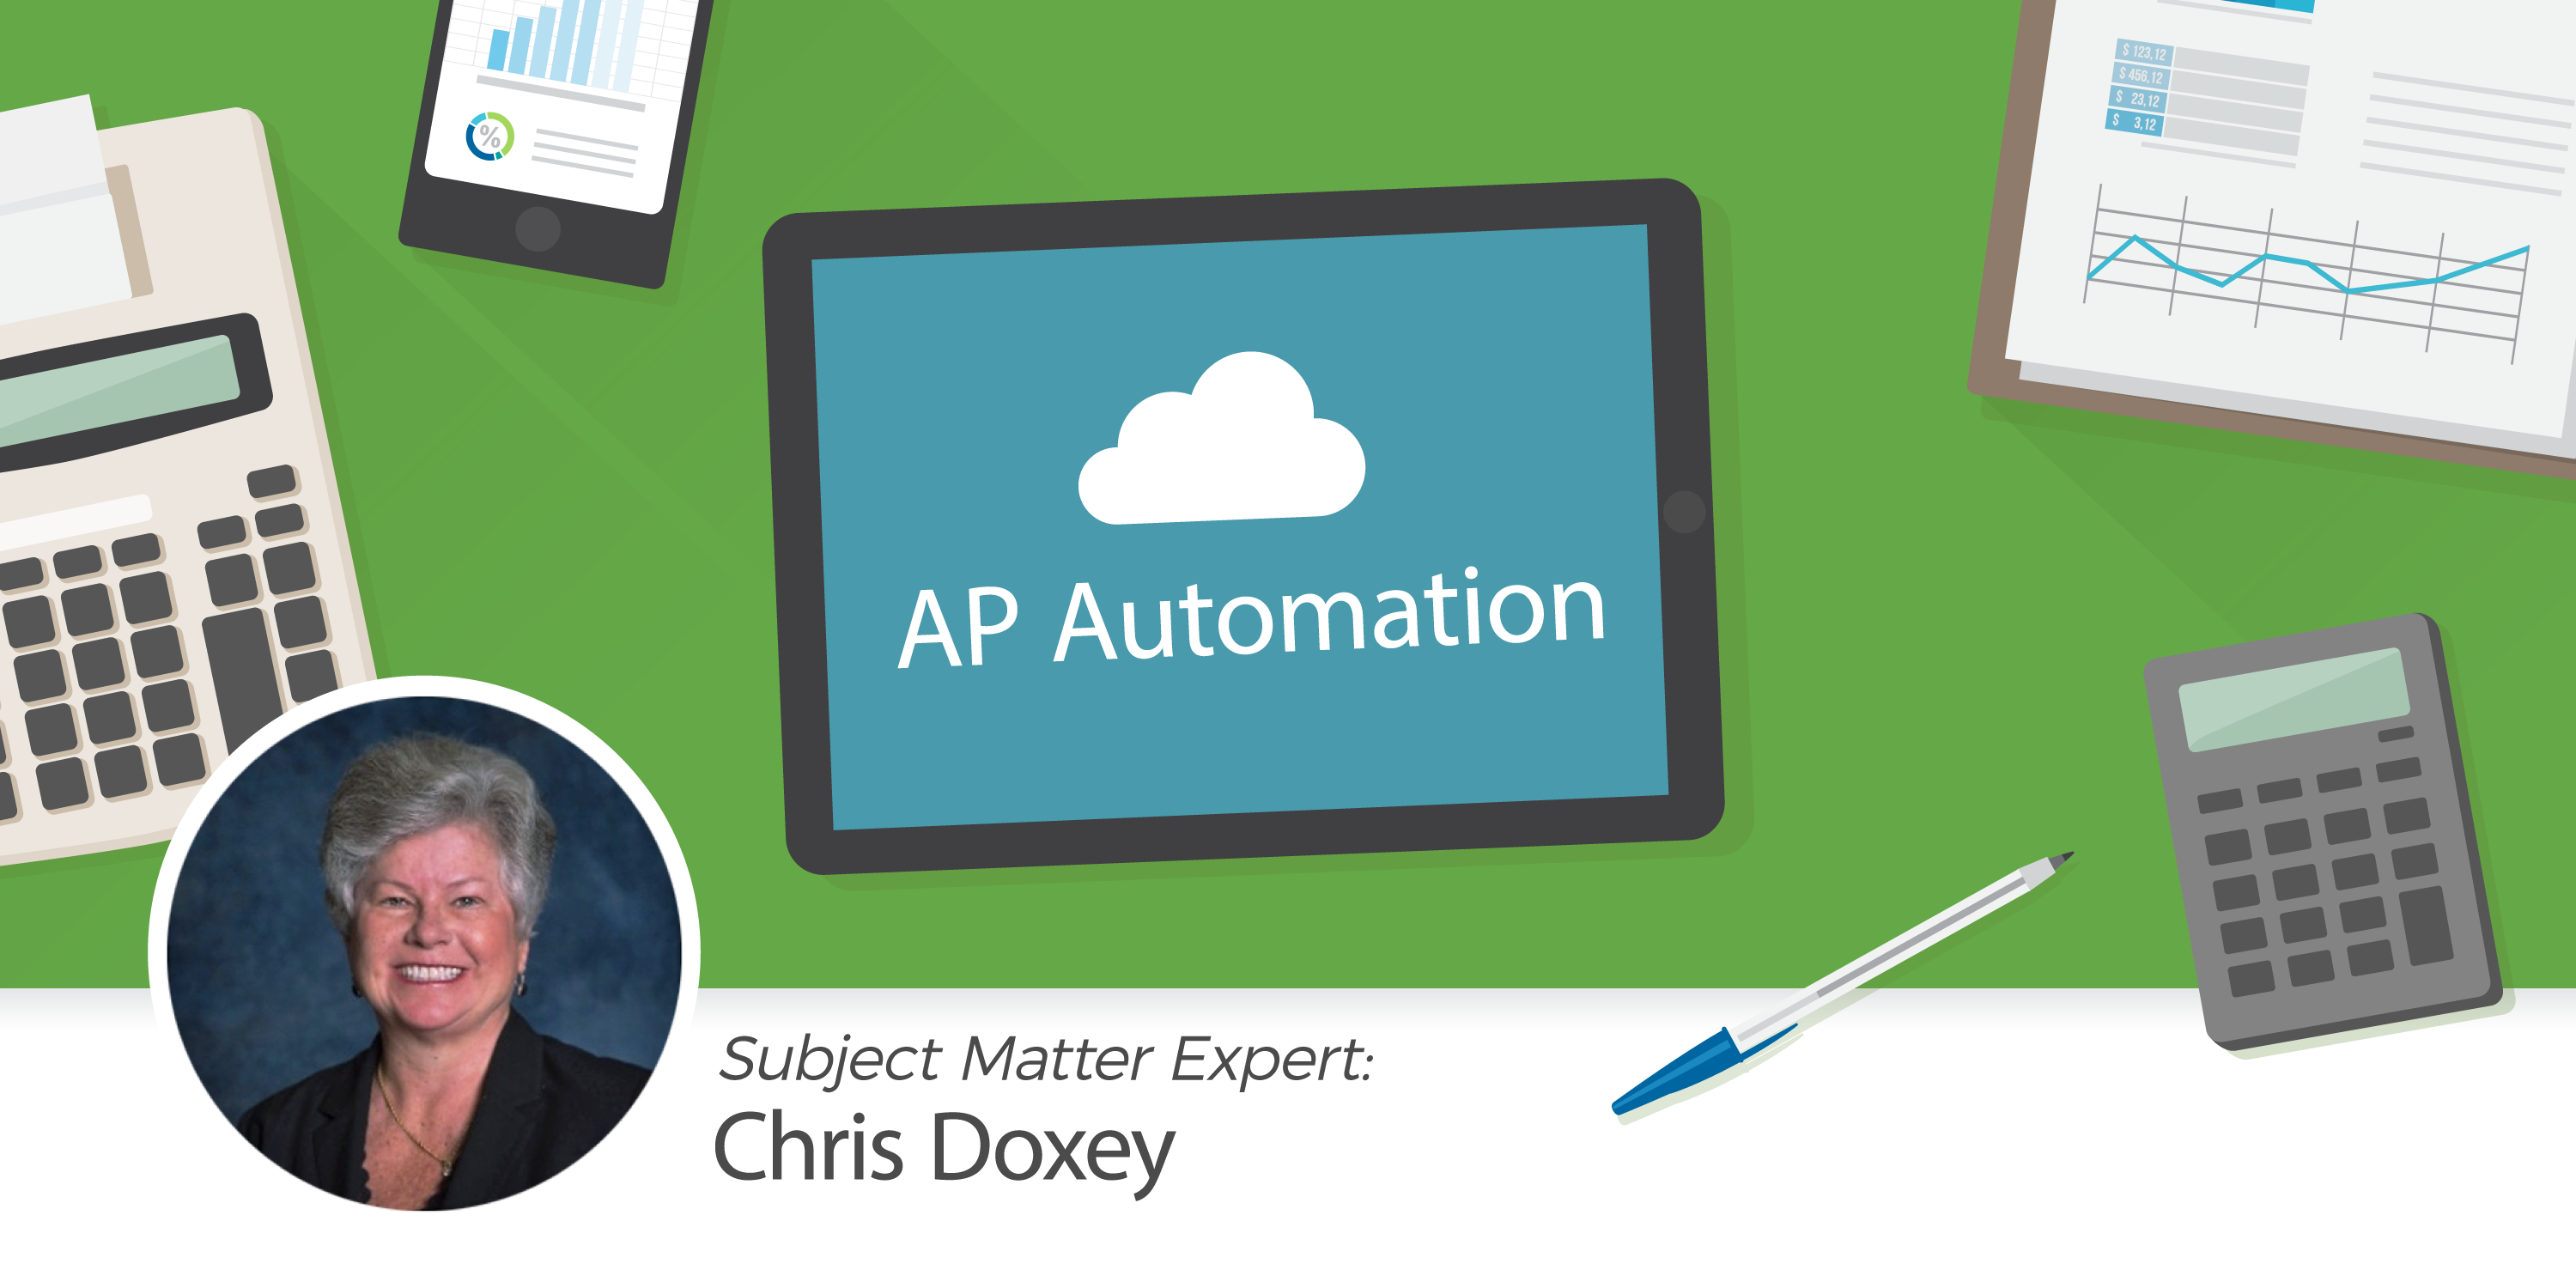 industry expert explains how to go paperless with AP automation